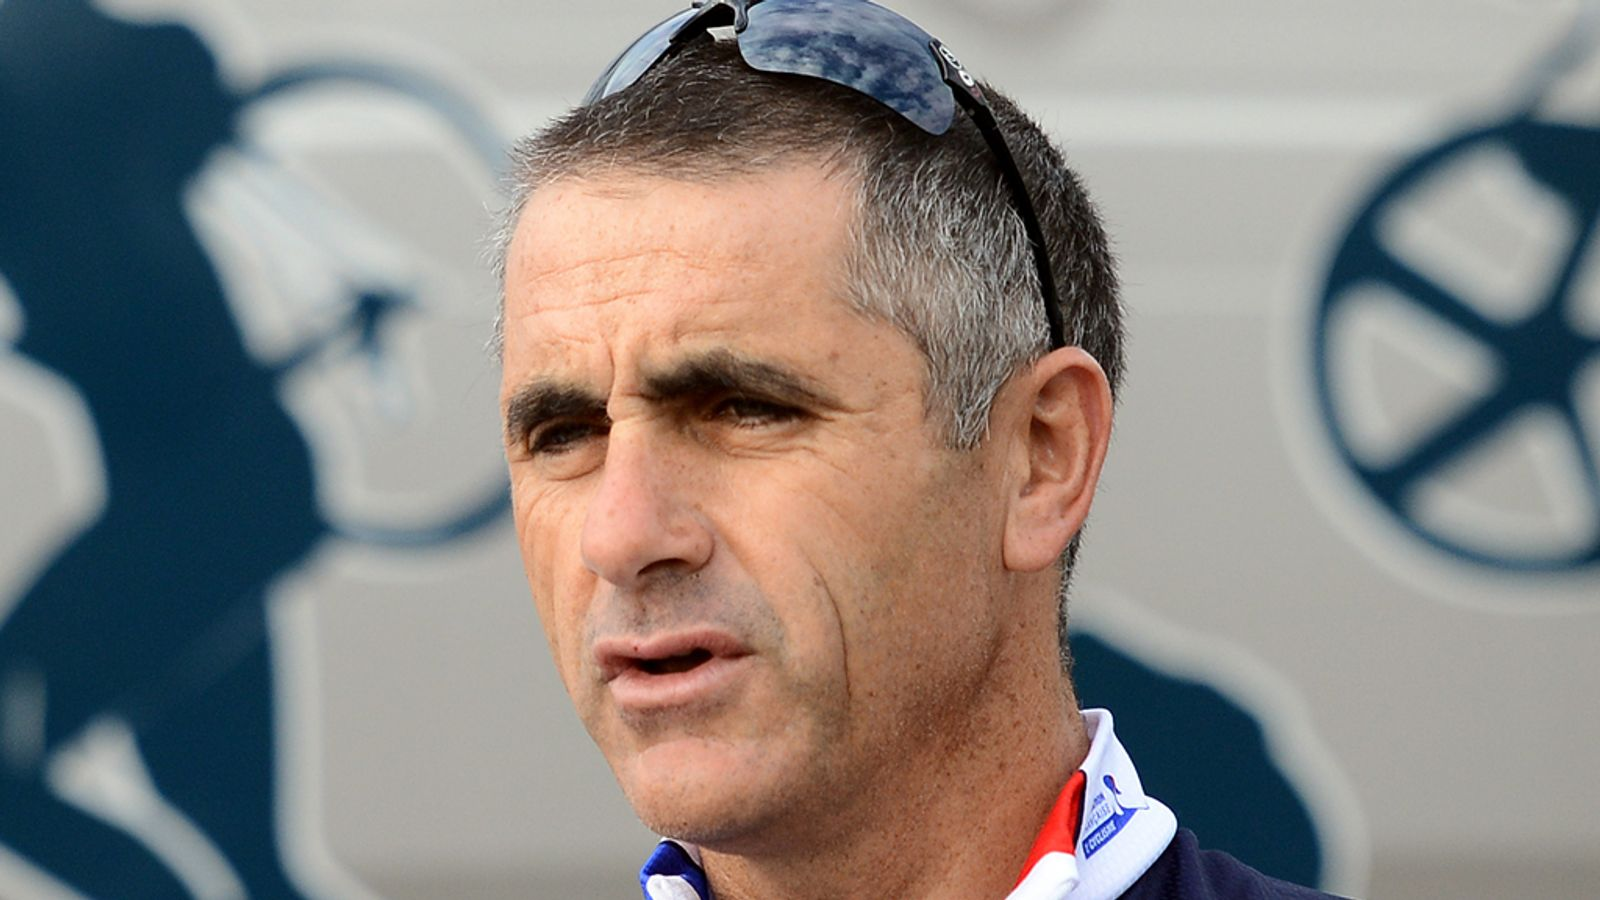 Laurent Jalabert in hospital with serious injuries after ...